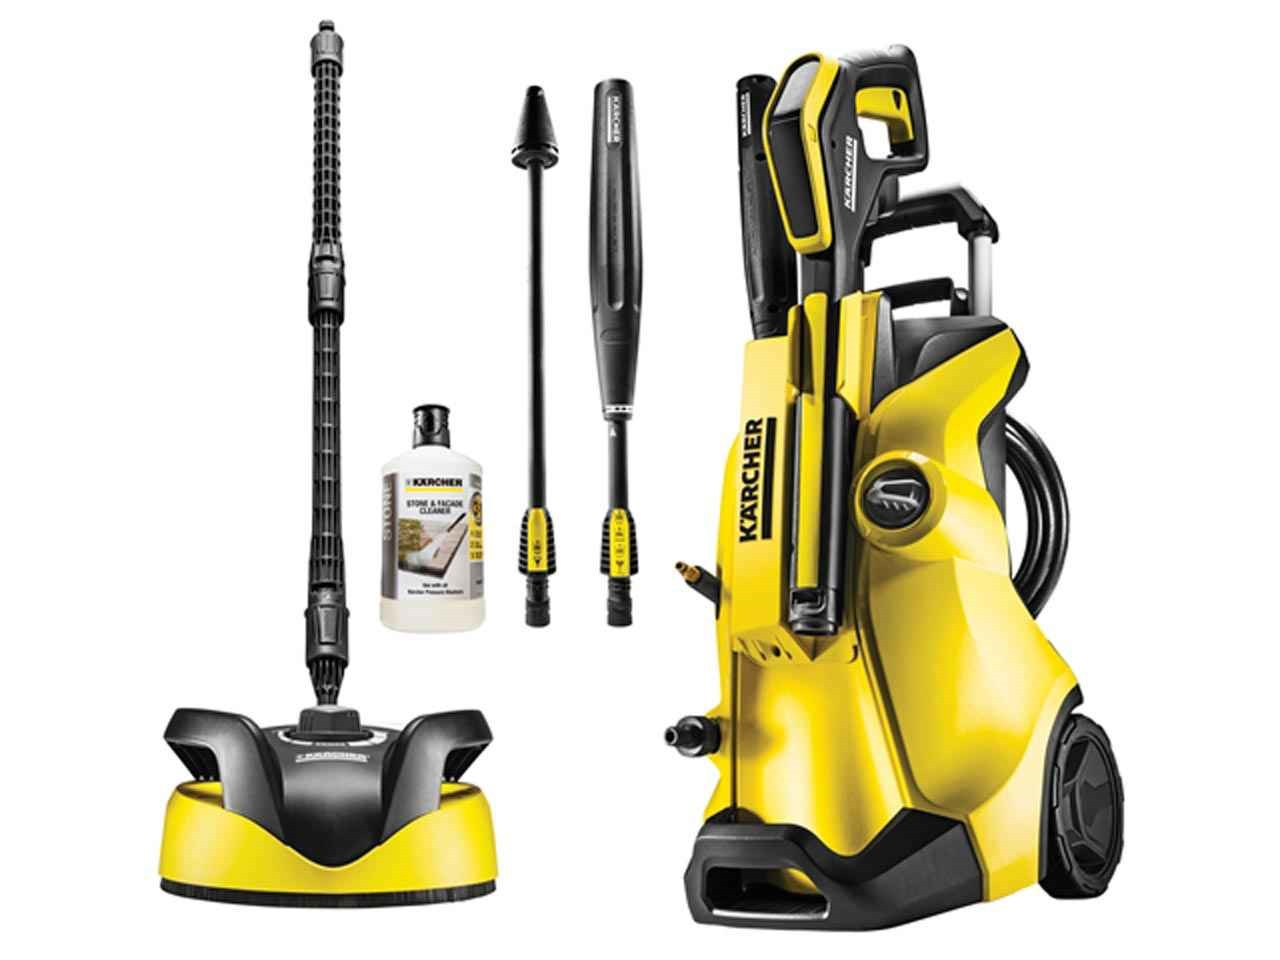 Lot 10076 - V Brand New Karcher K4 Water Cooled Full Control High Pressure Washer-ca.30M2/H-20-130 Bar Max-